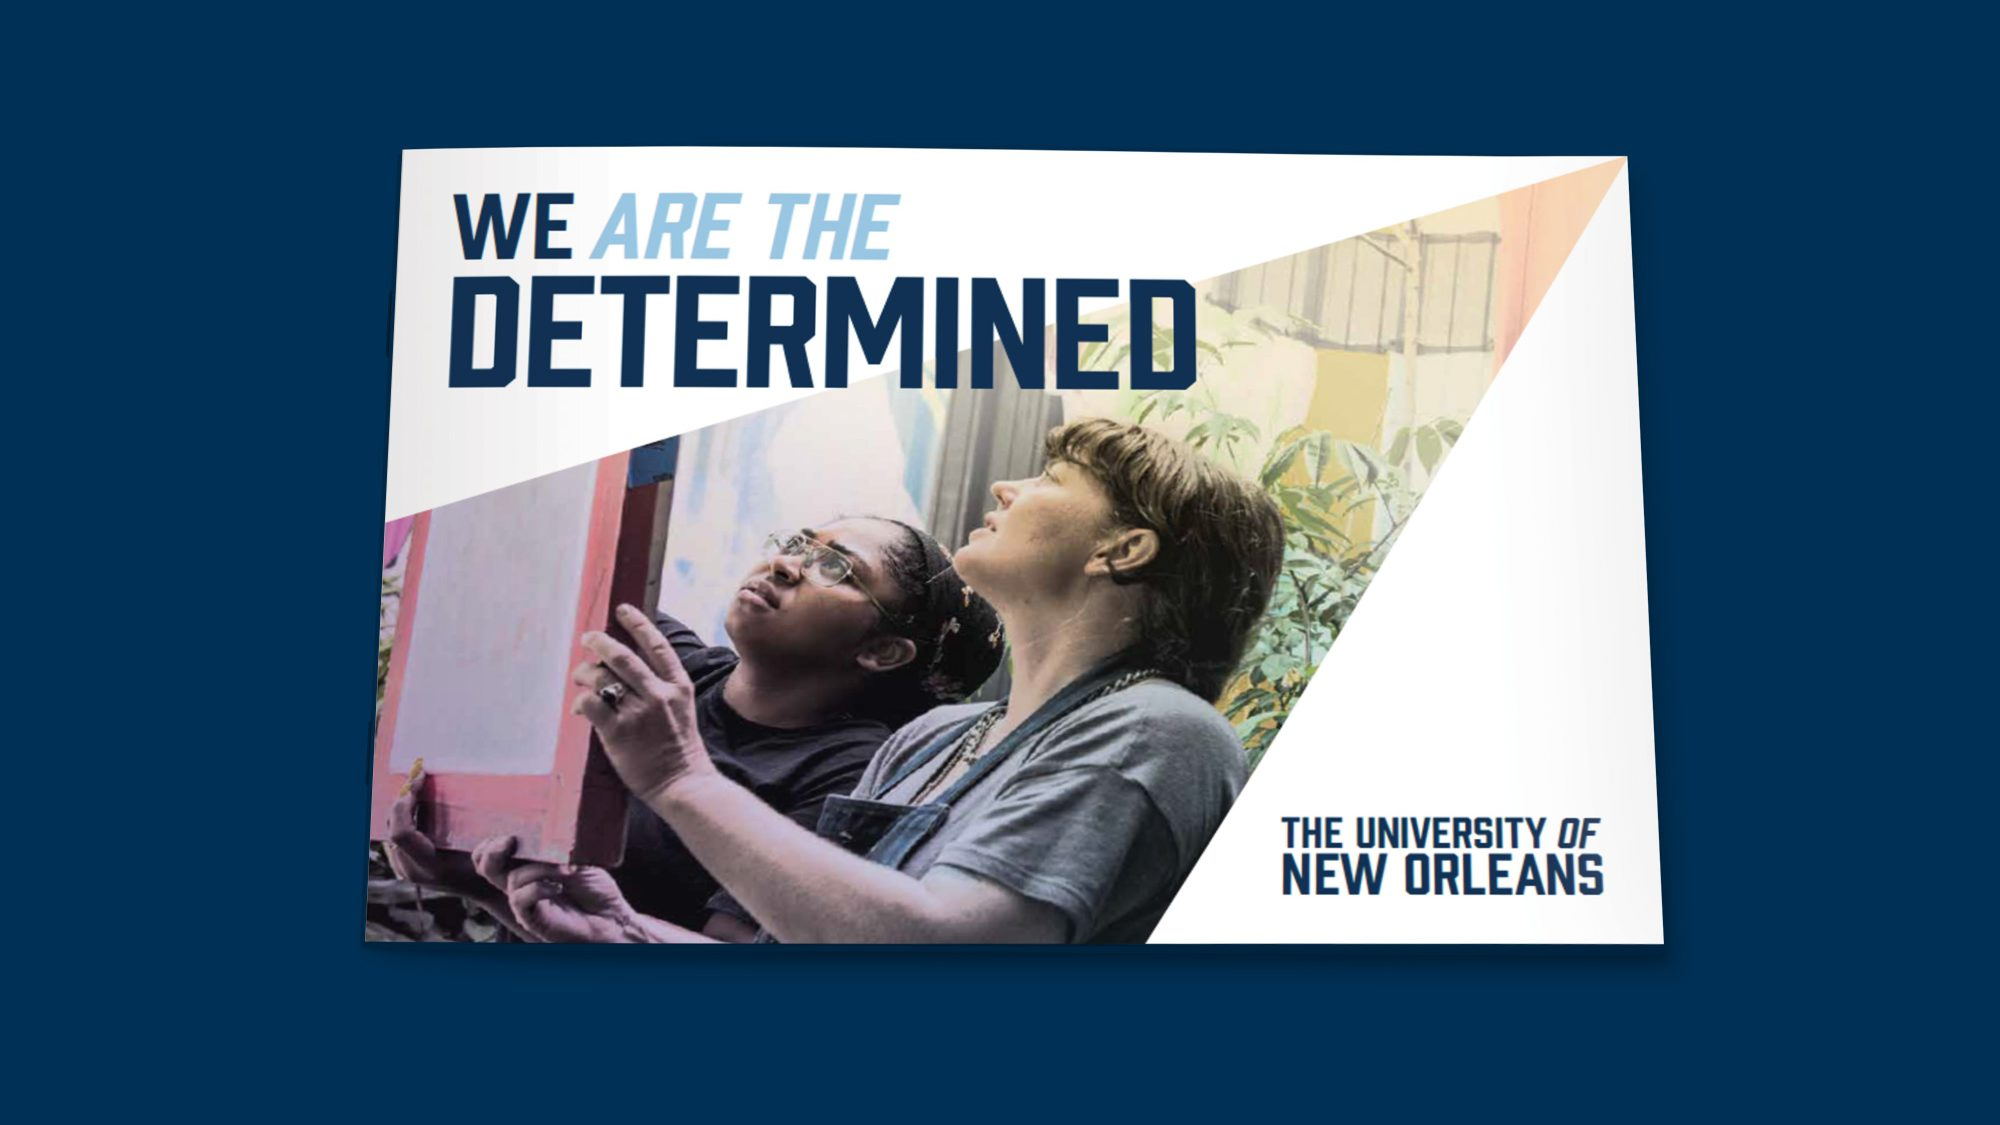 Image text: We are the determined - University of New Orleans. Brochure cover.